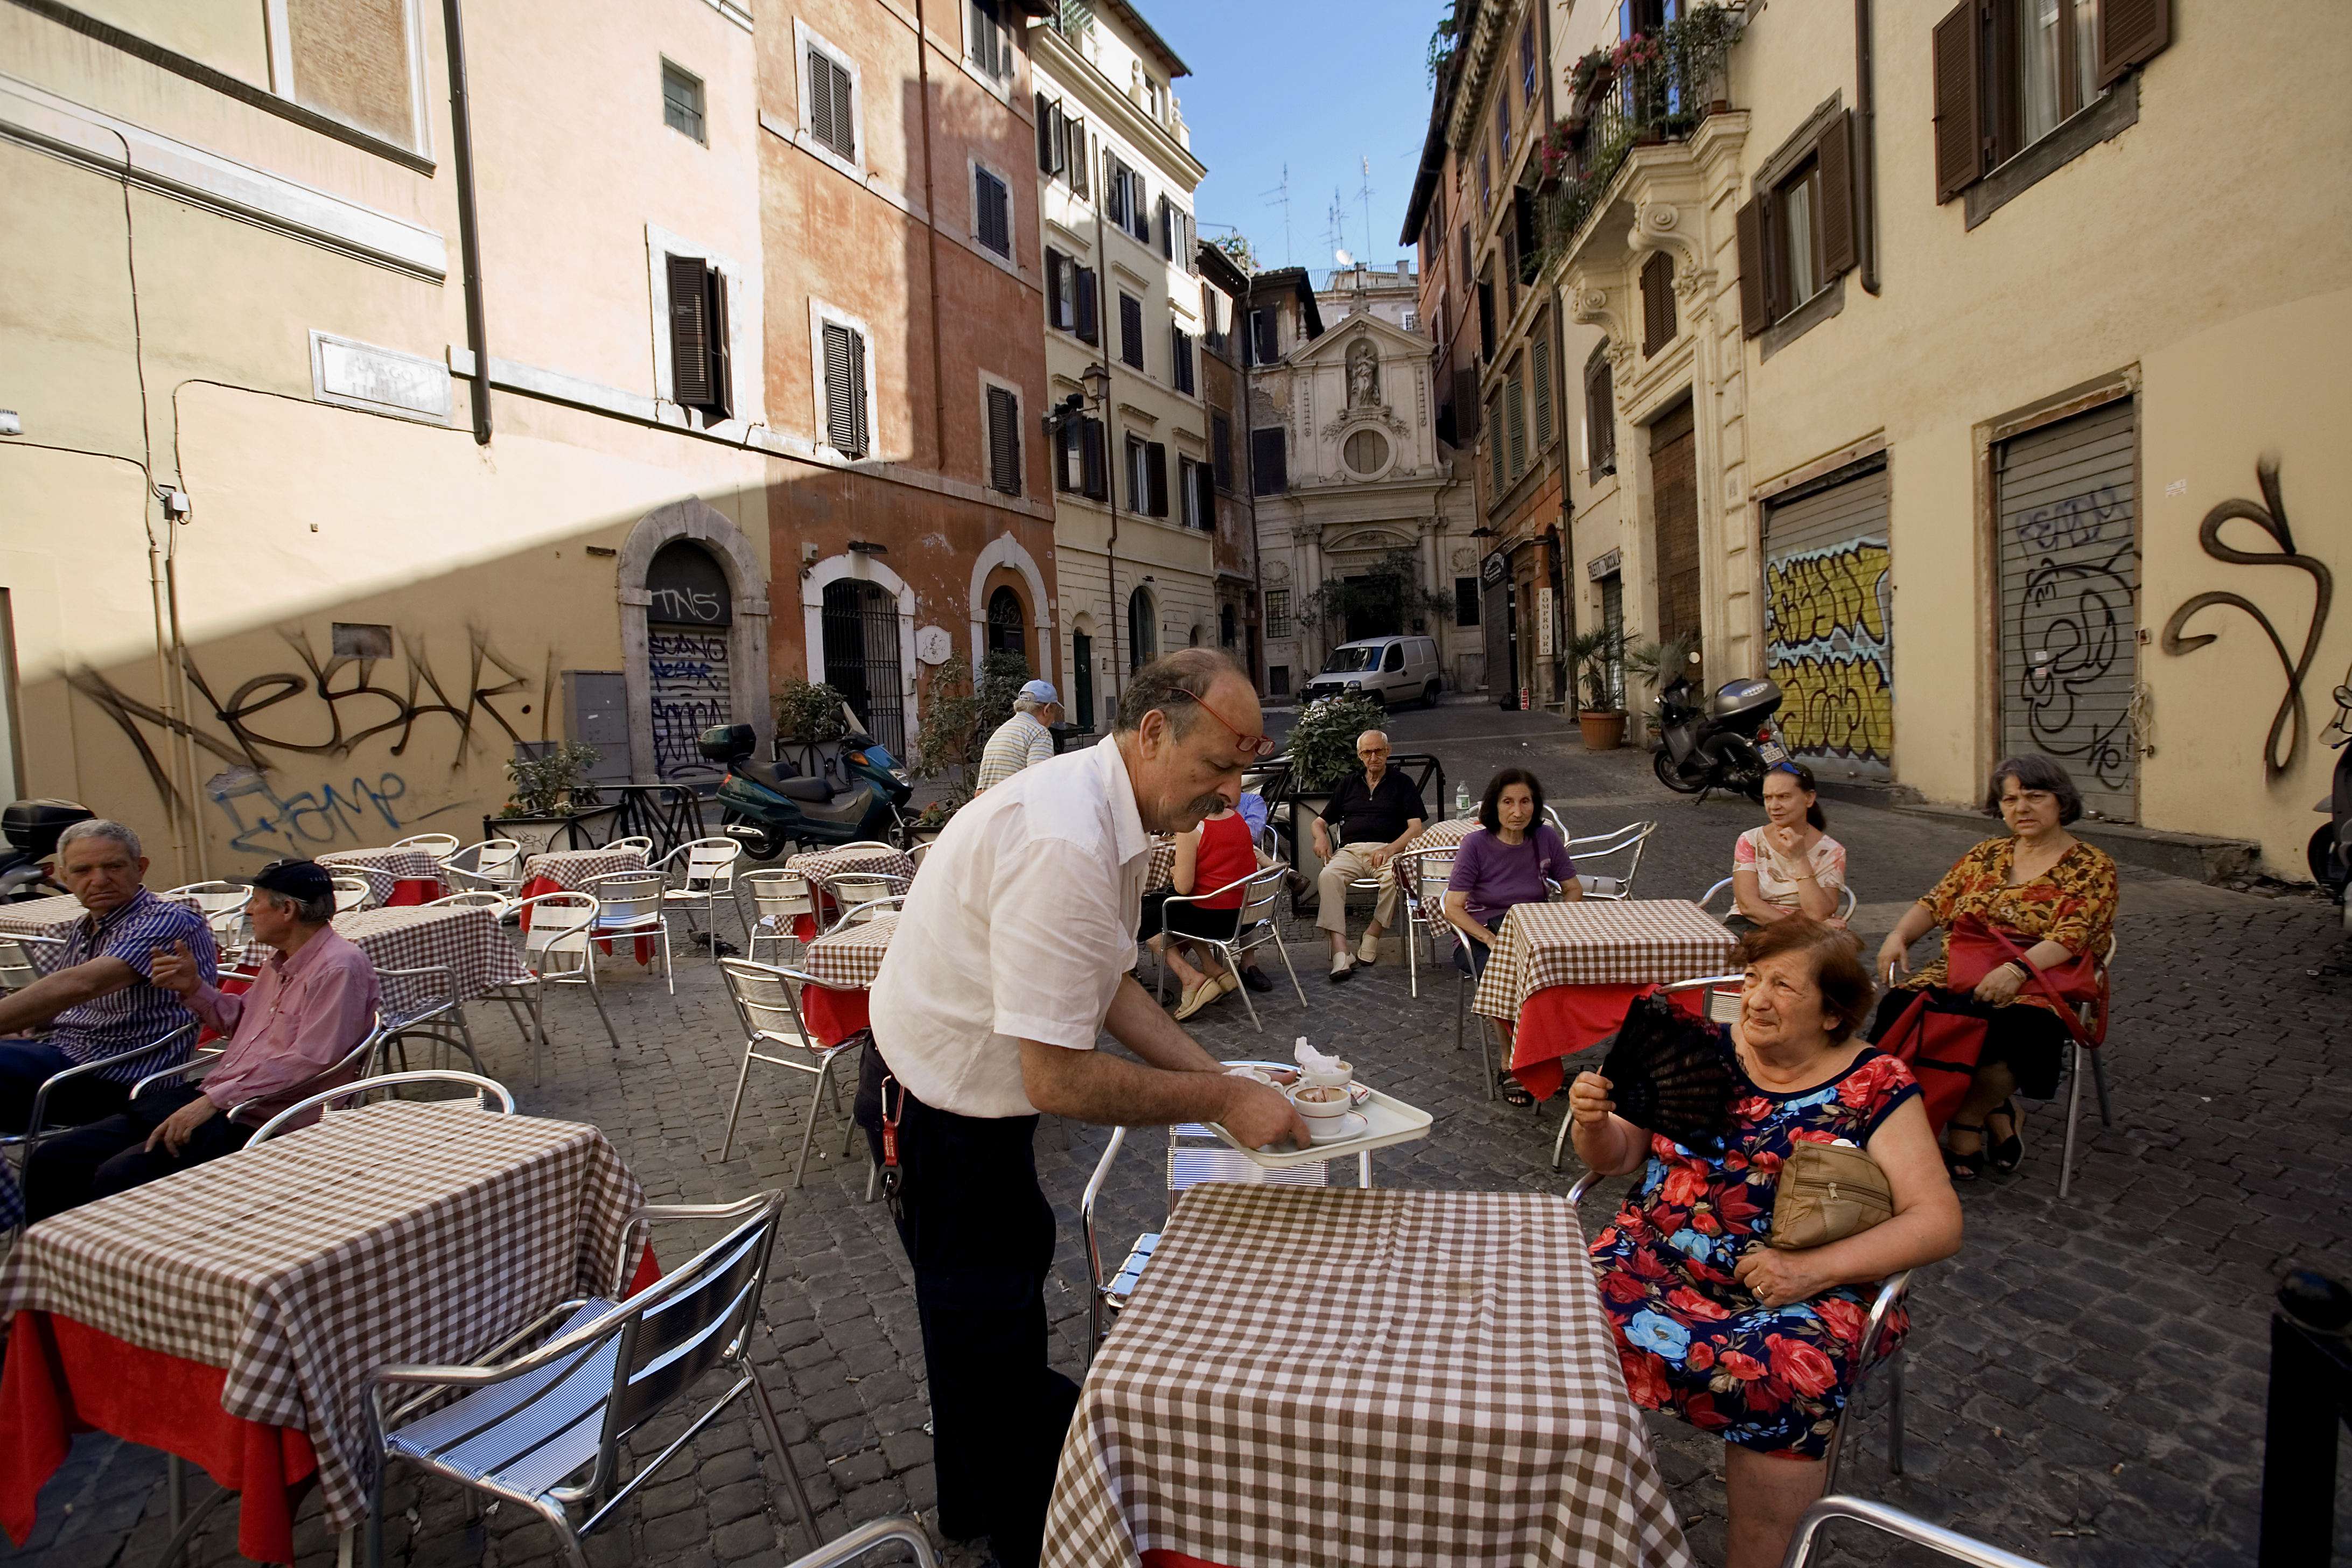 Street Cafe Wallpapers High Quality Download Free